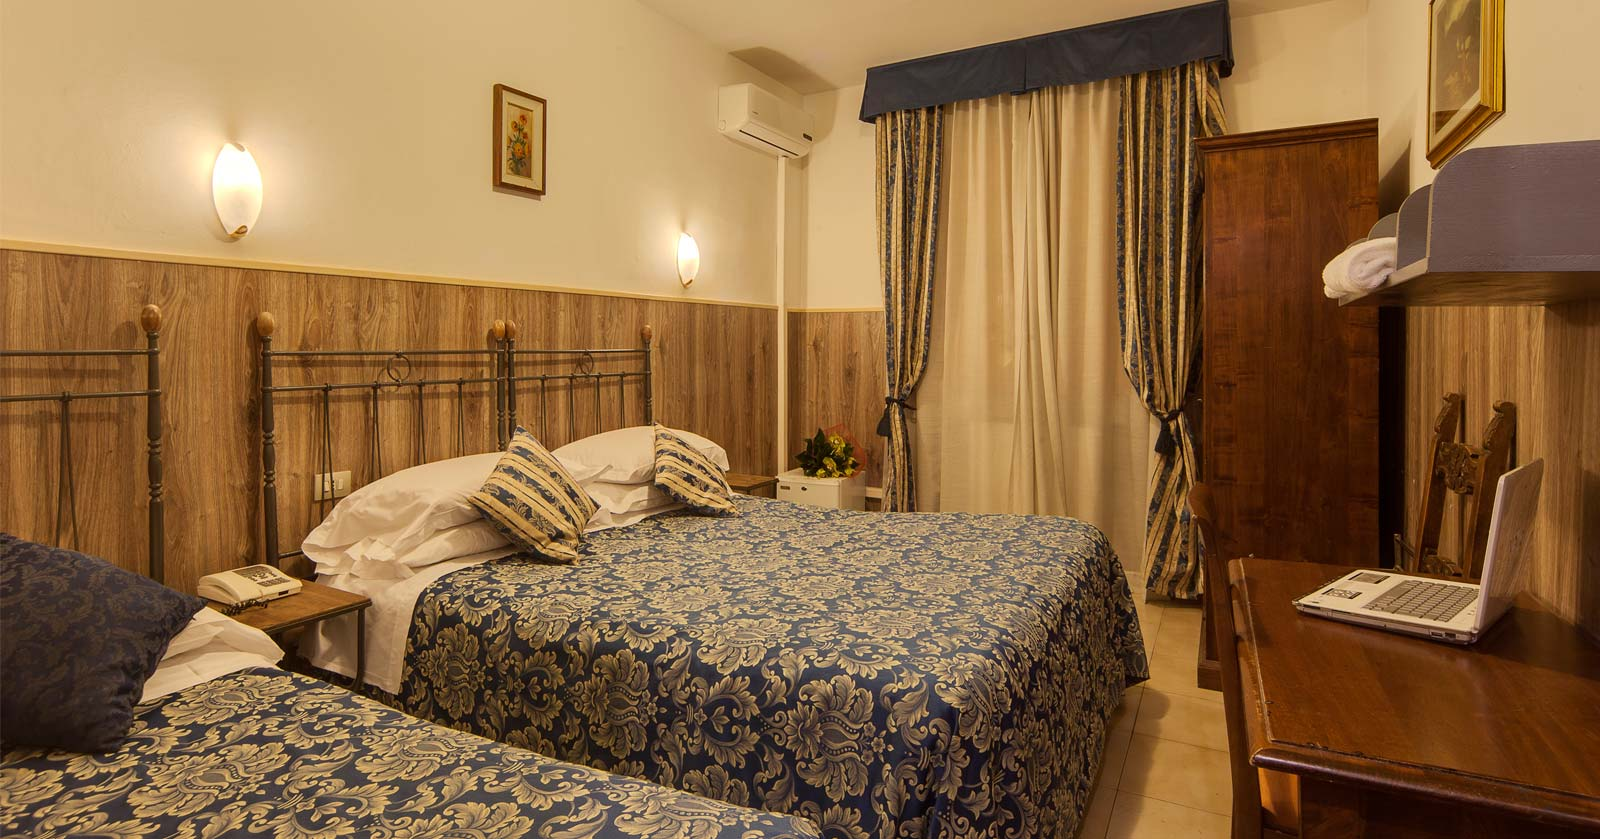 Family-run hotel in the heart of Florence - Florence Hotel Fani